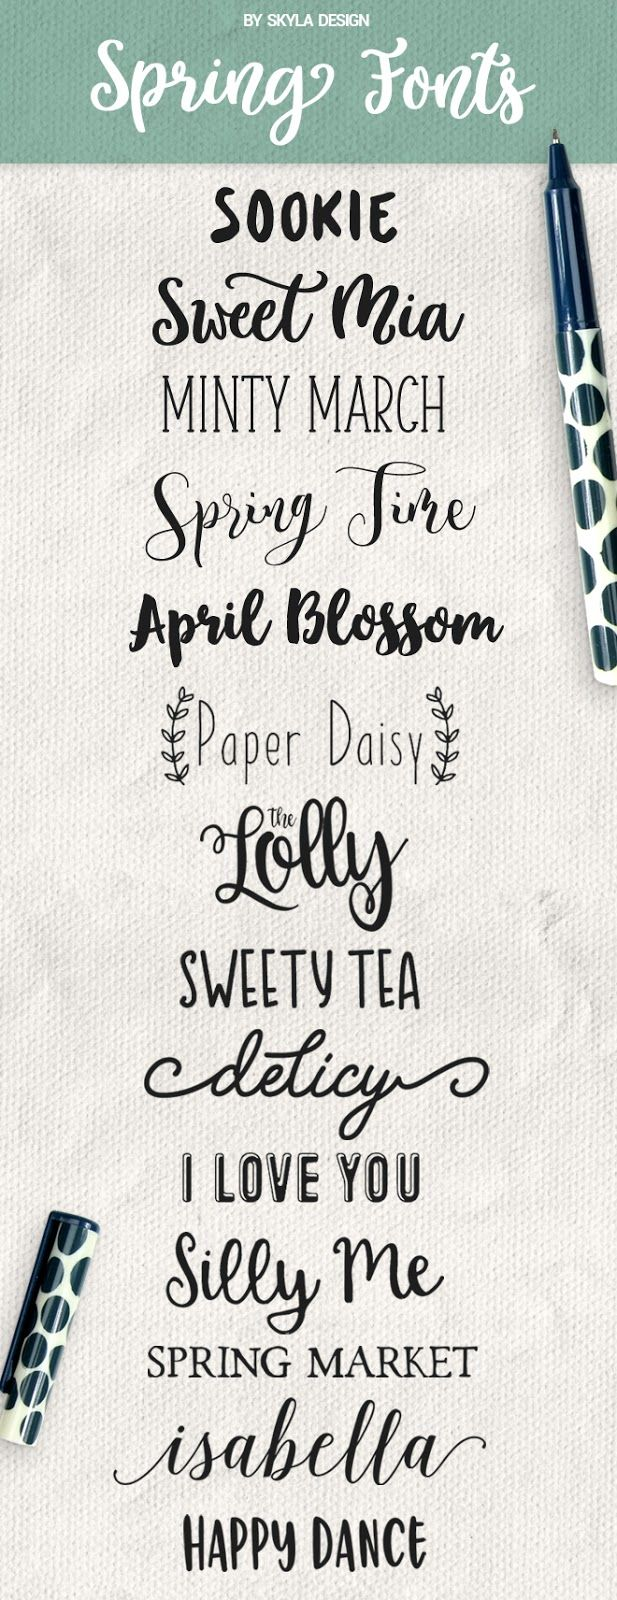 Here are some Cute, Handwritten, Spring fonts!   Sookie  |    Sweet Mia  |    Minty March  |    Spring Time  |   April Blossom  |   Th...